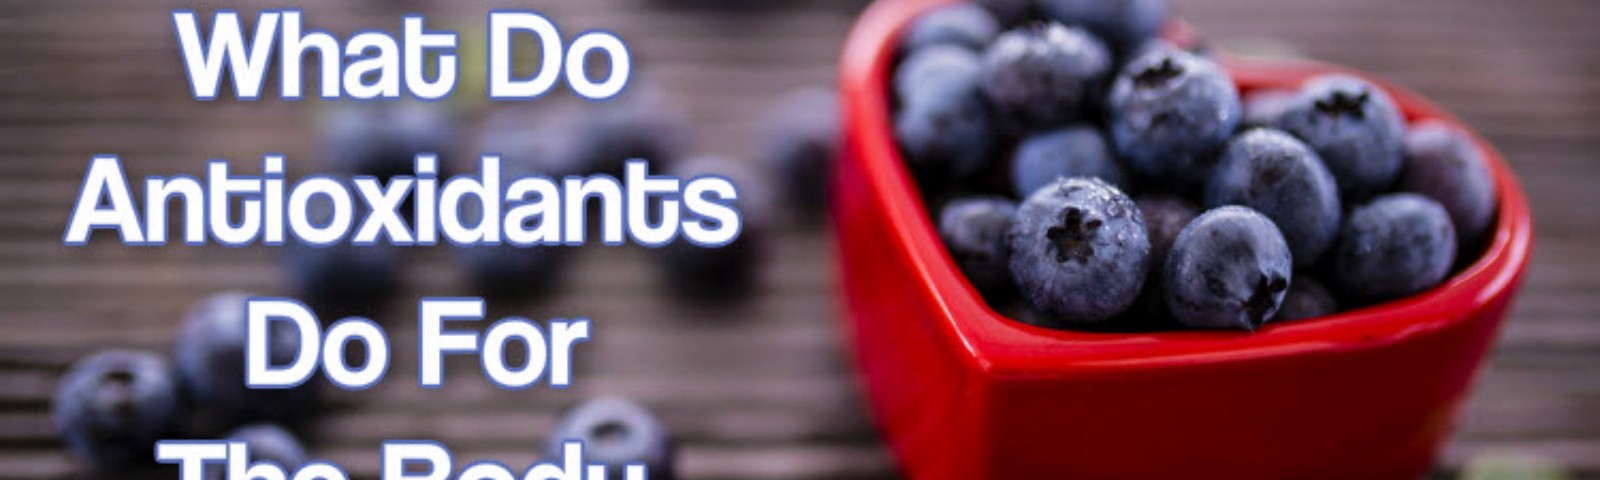 what do antioxidants do for your body